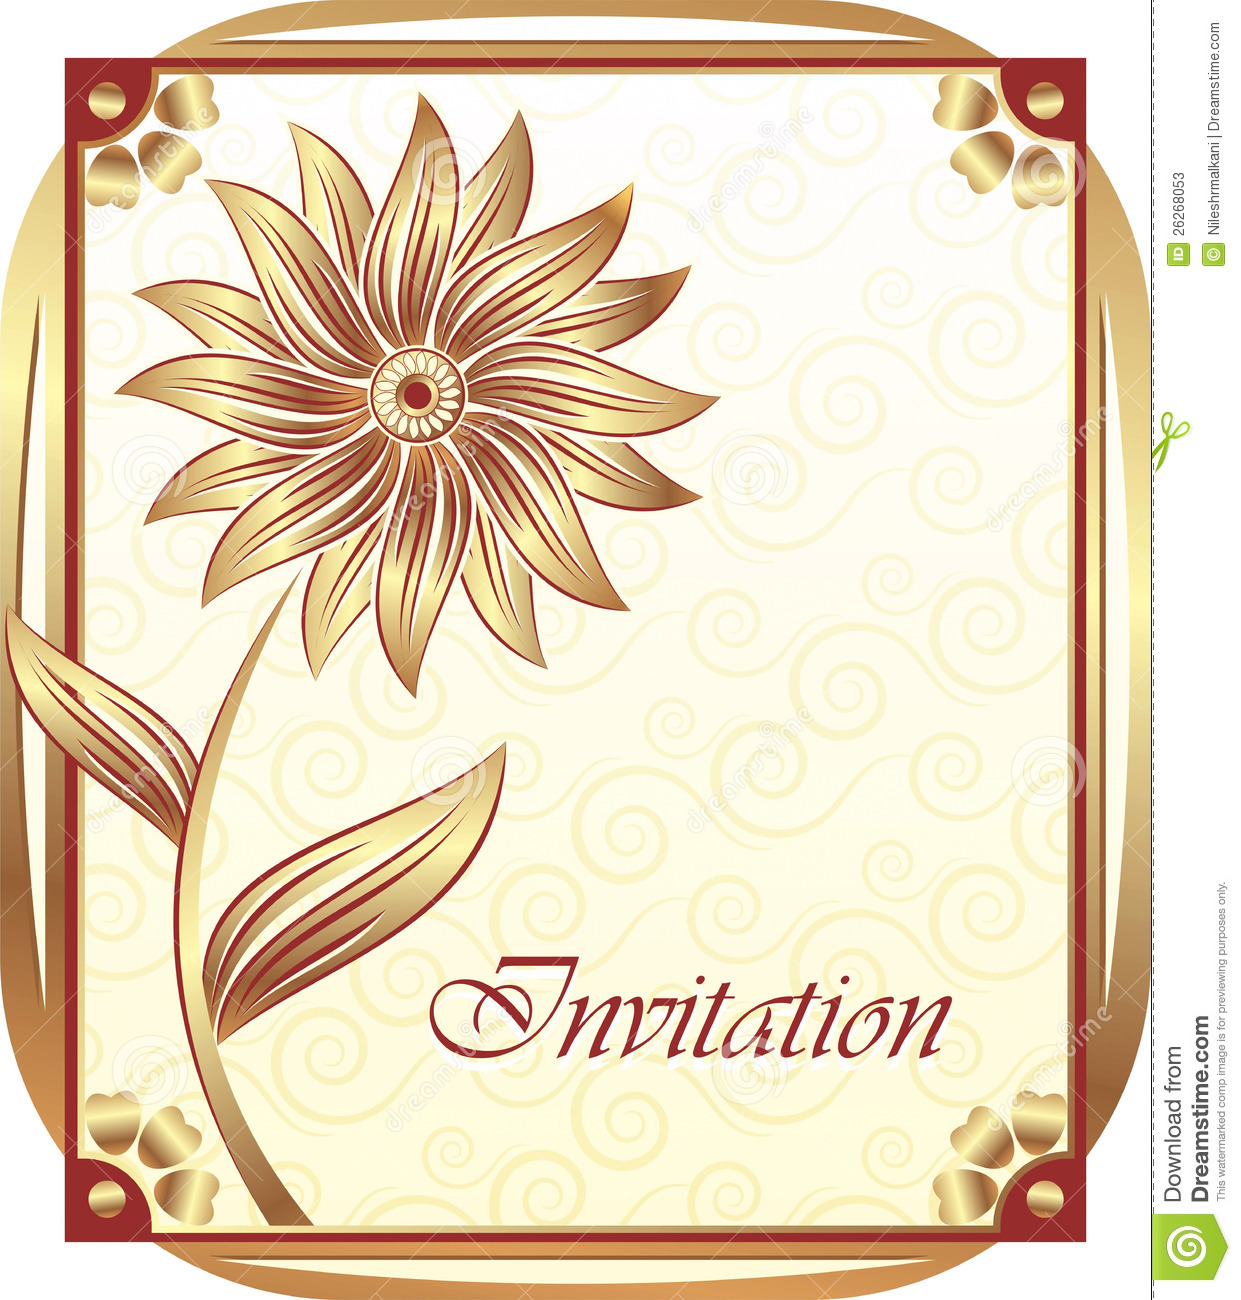 More similar stock images of ` Invitation card design `